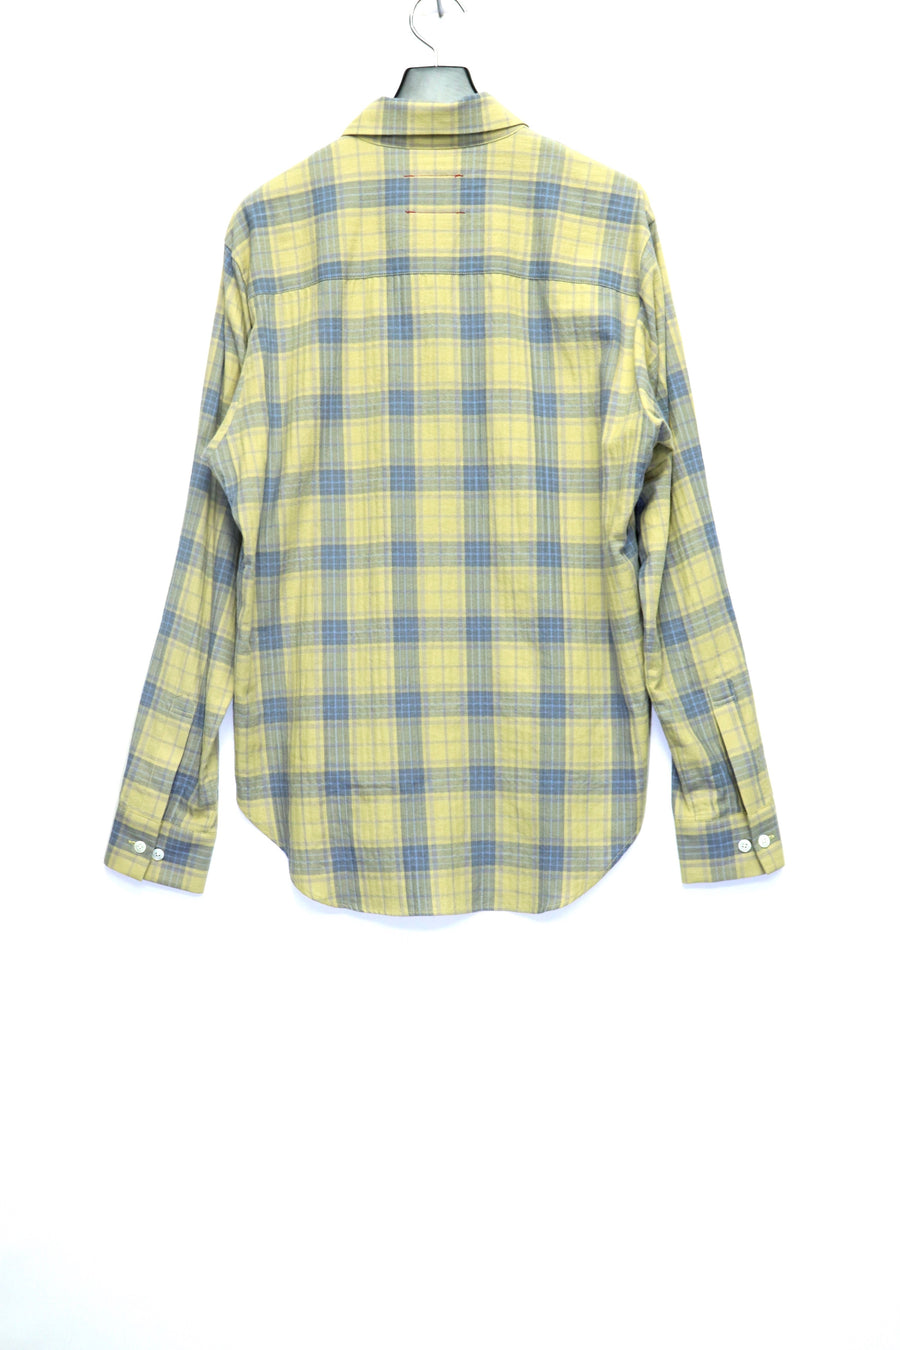 【20%OFF】SYU.HOMME/FEMM  Hi-neck Zip Shirts(YELLOW)